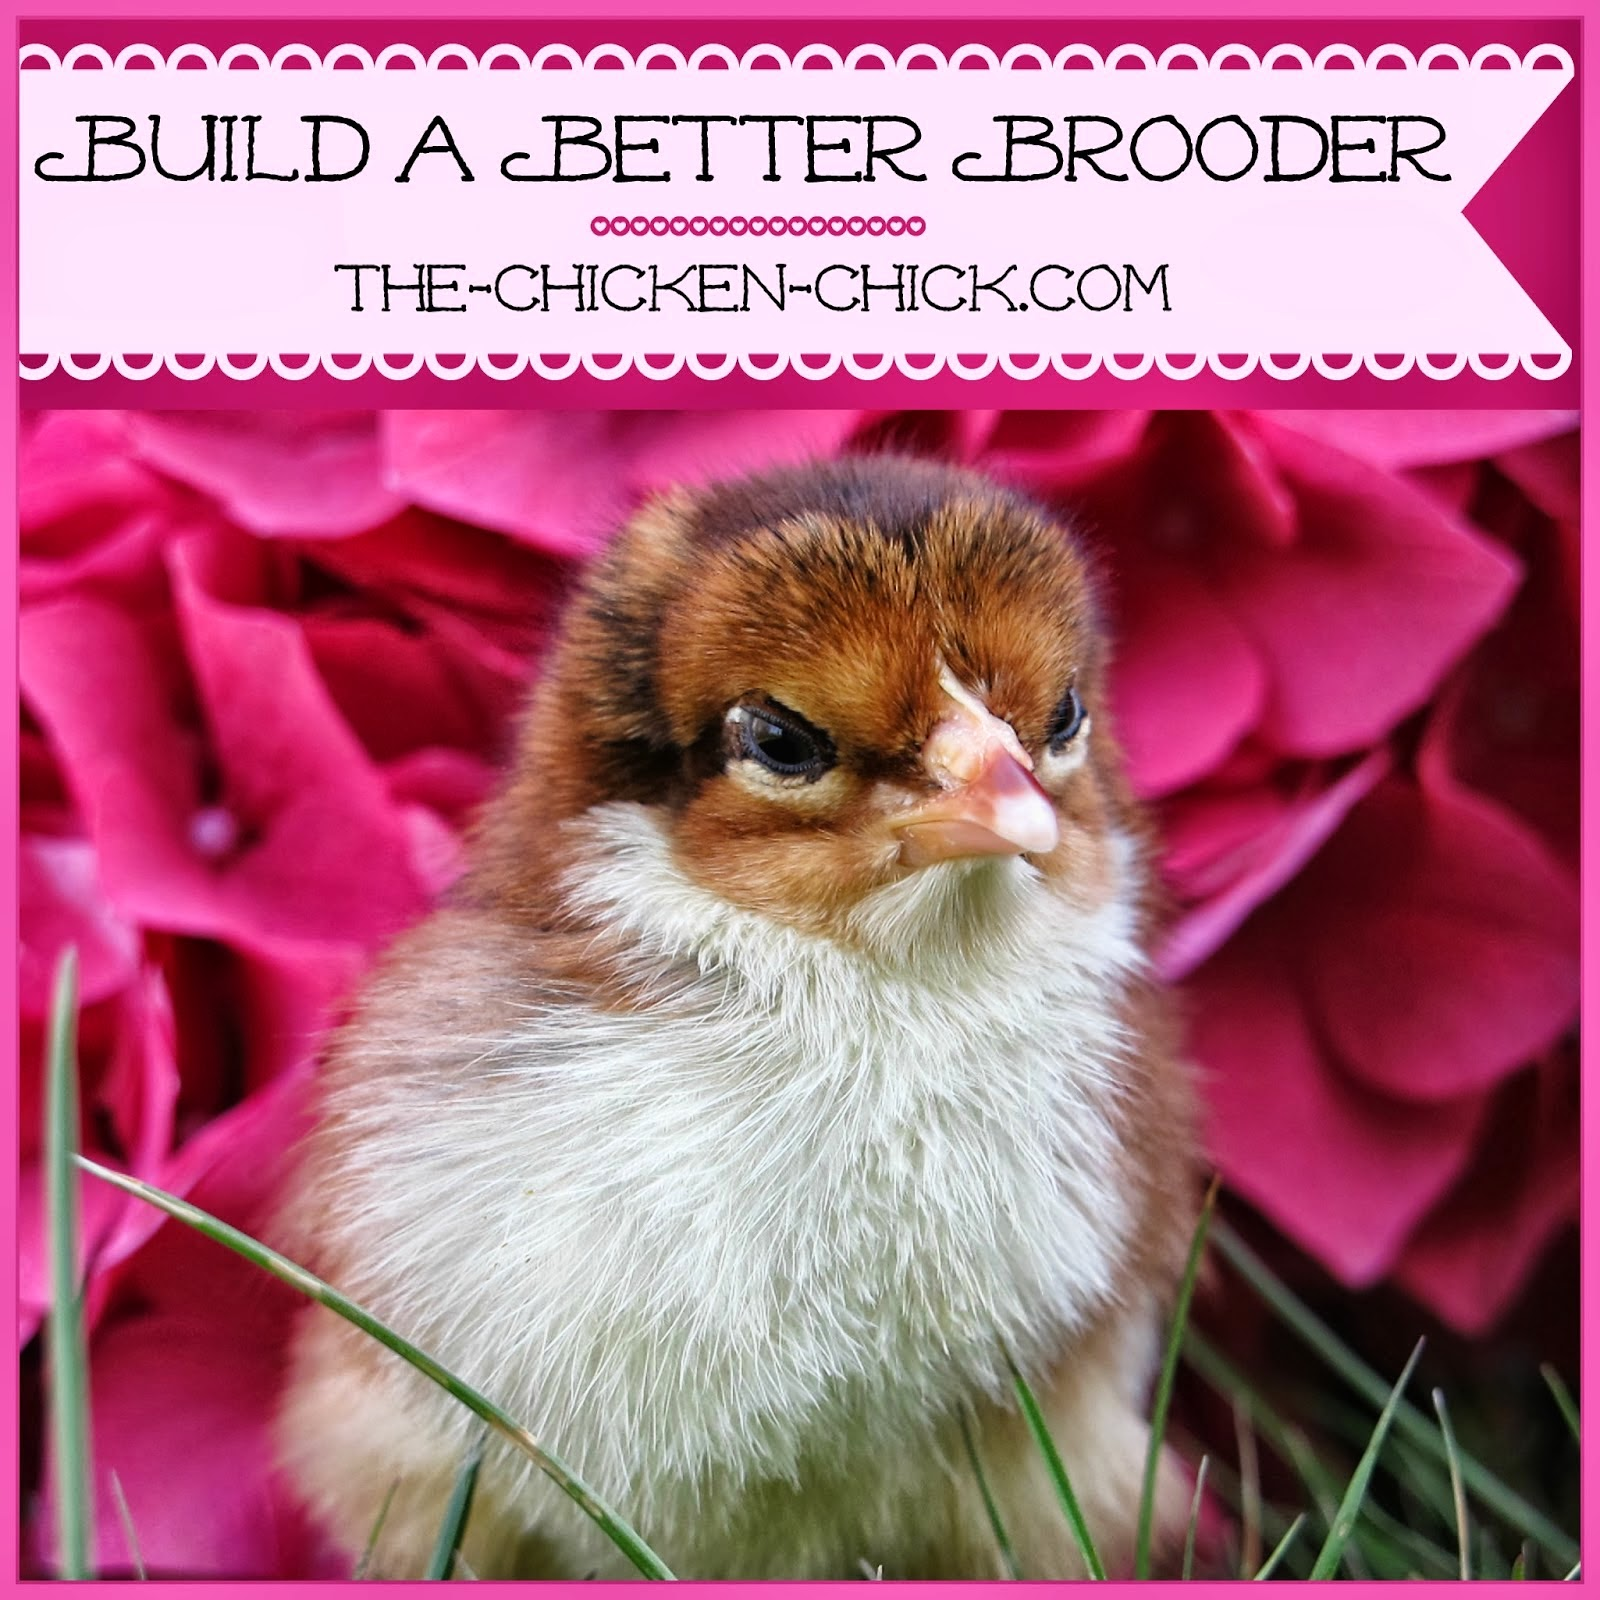 No need to invest in expensive housing for chicks- with a little creativity, you can make a brooder that perfectly accommodates day old chicks with the flexibility for expansion as they grow!